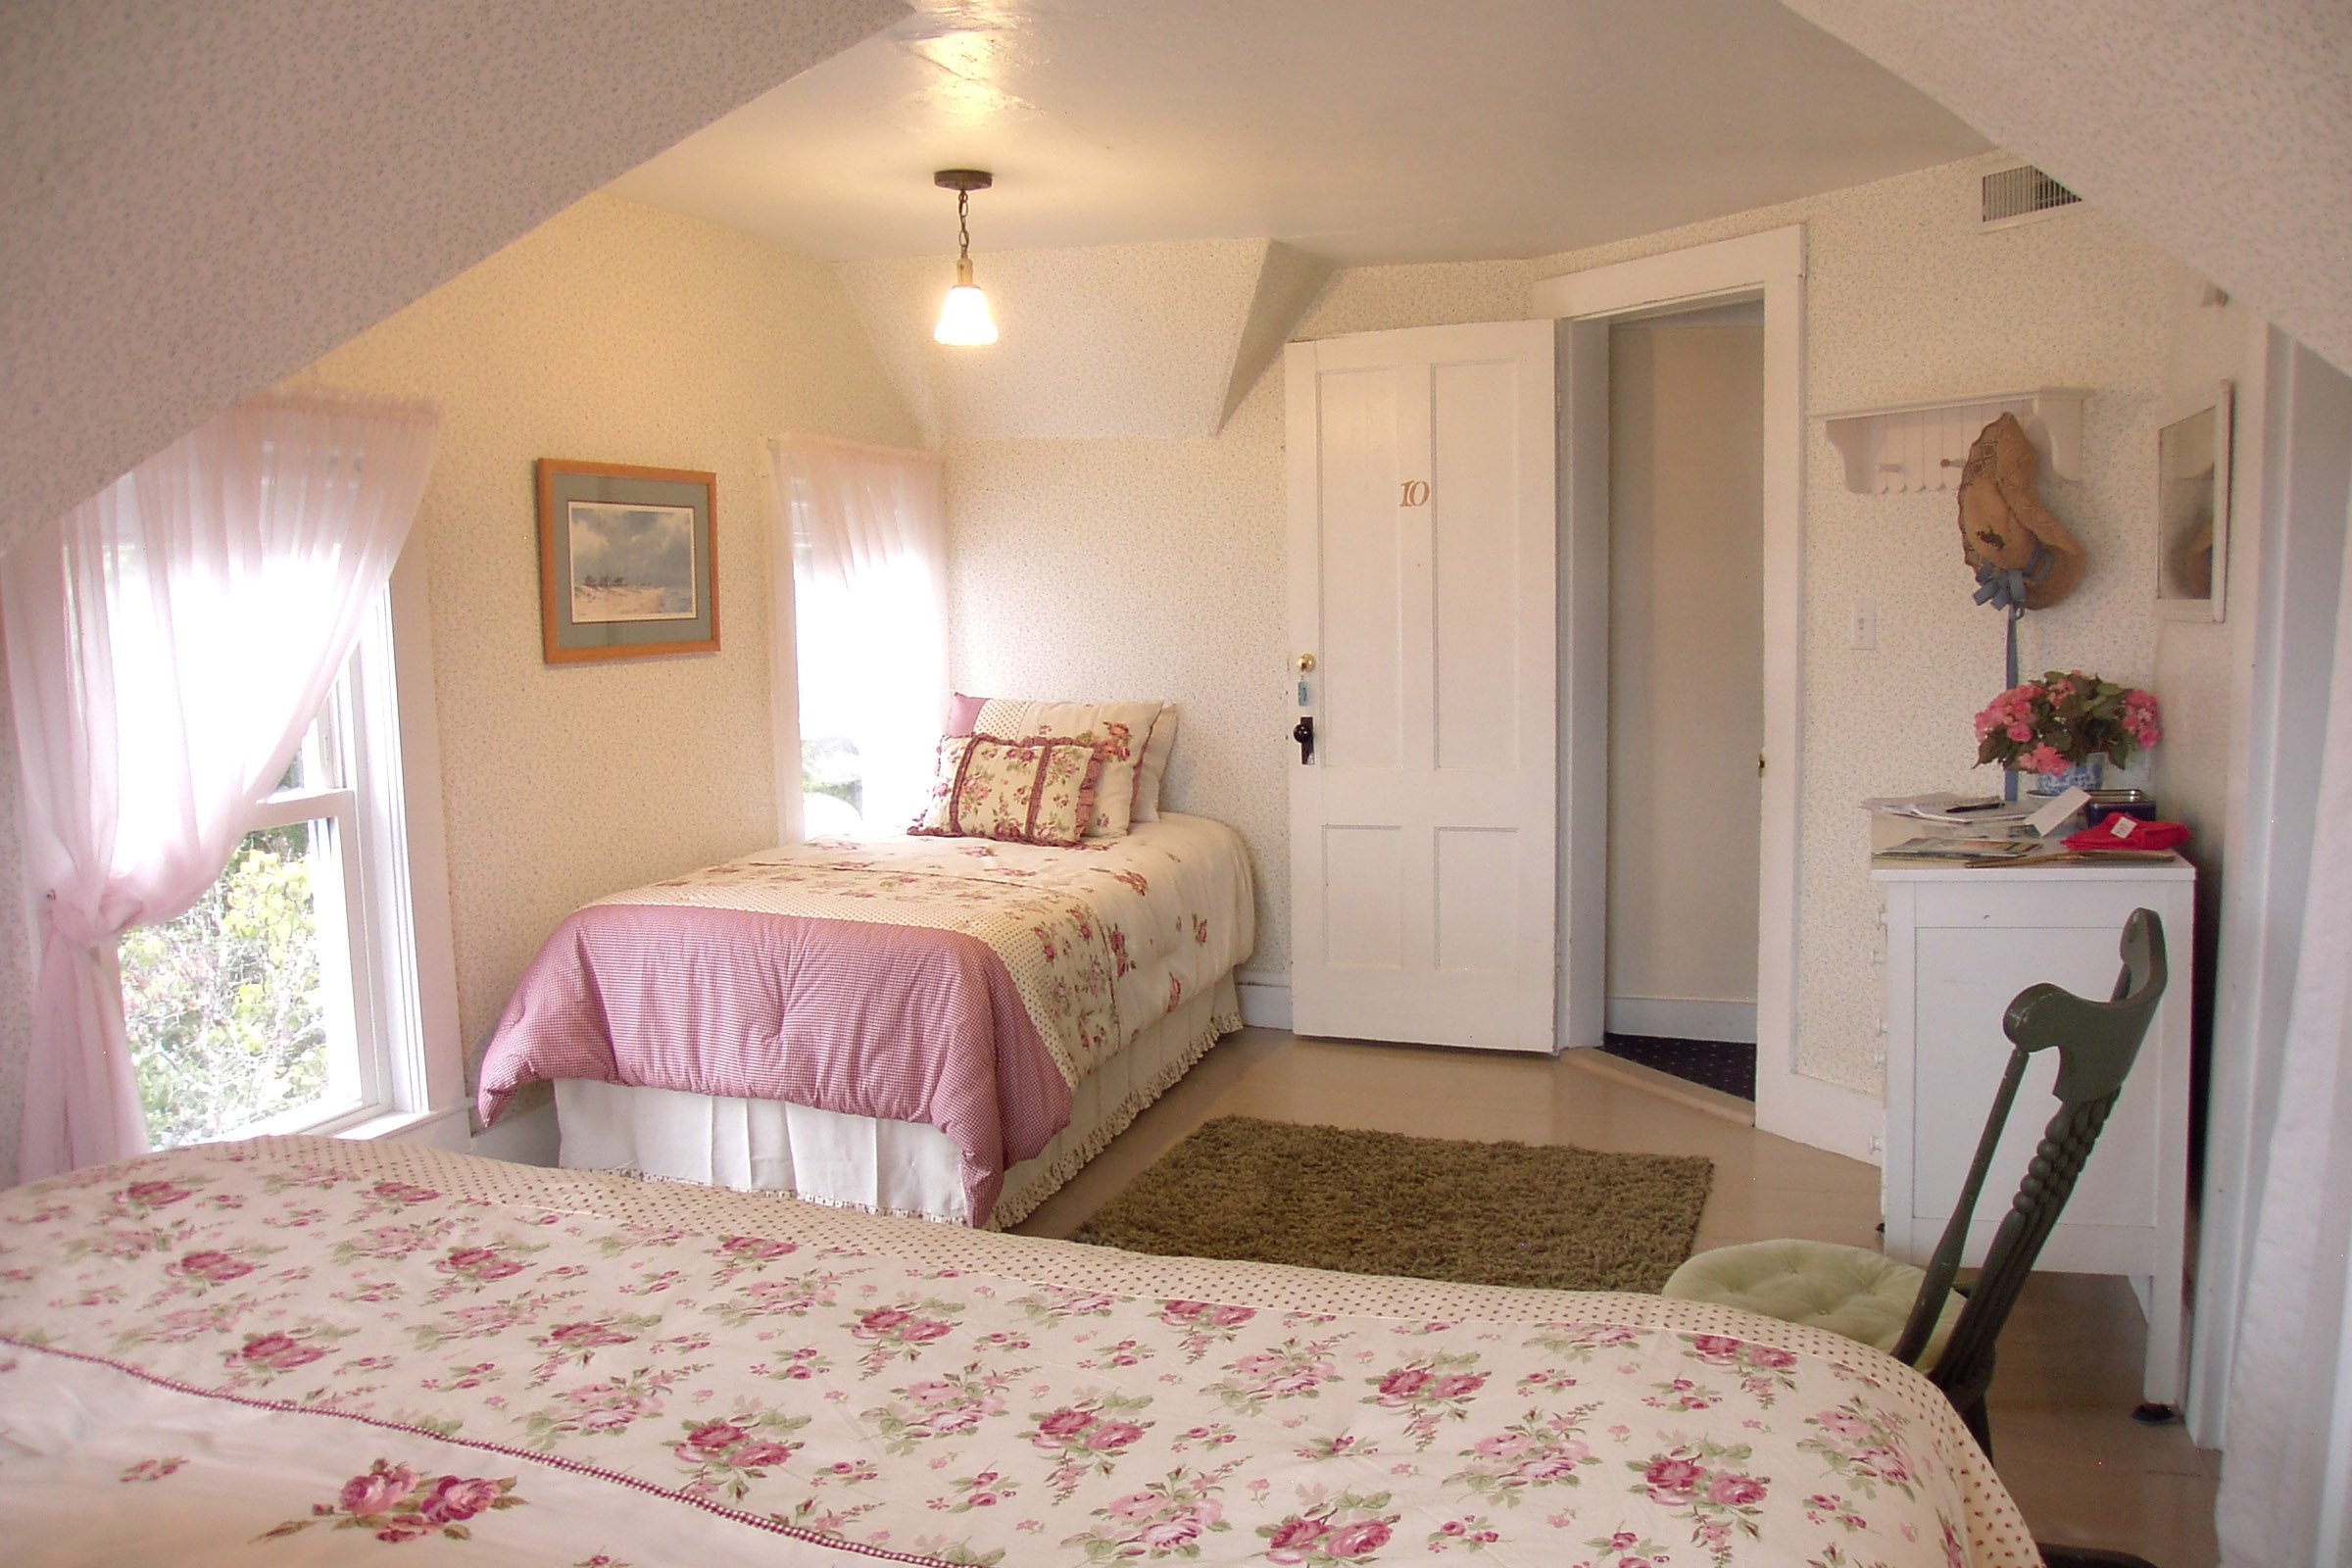 Guestroom #10, One king bed, one twin bed, ocean view